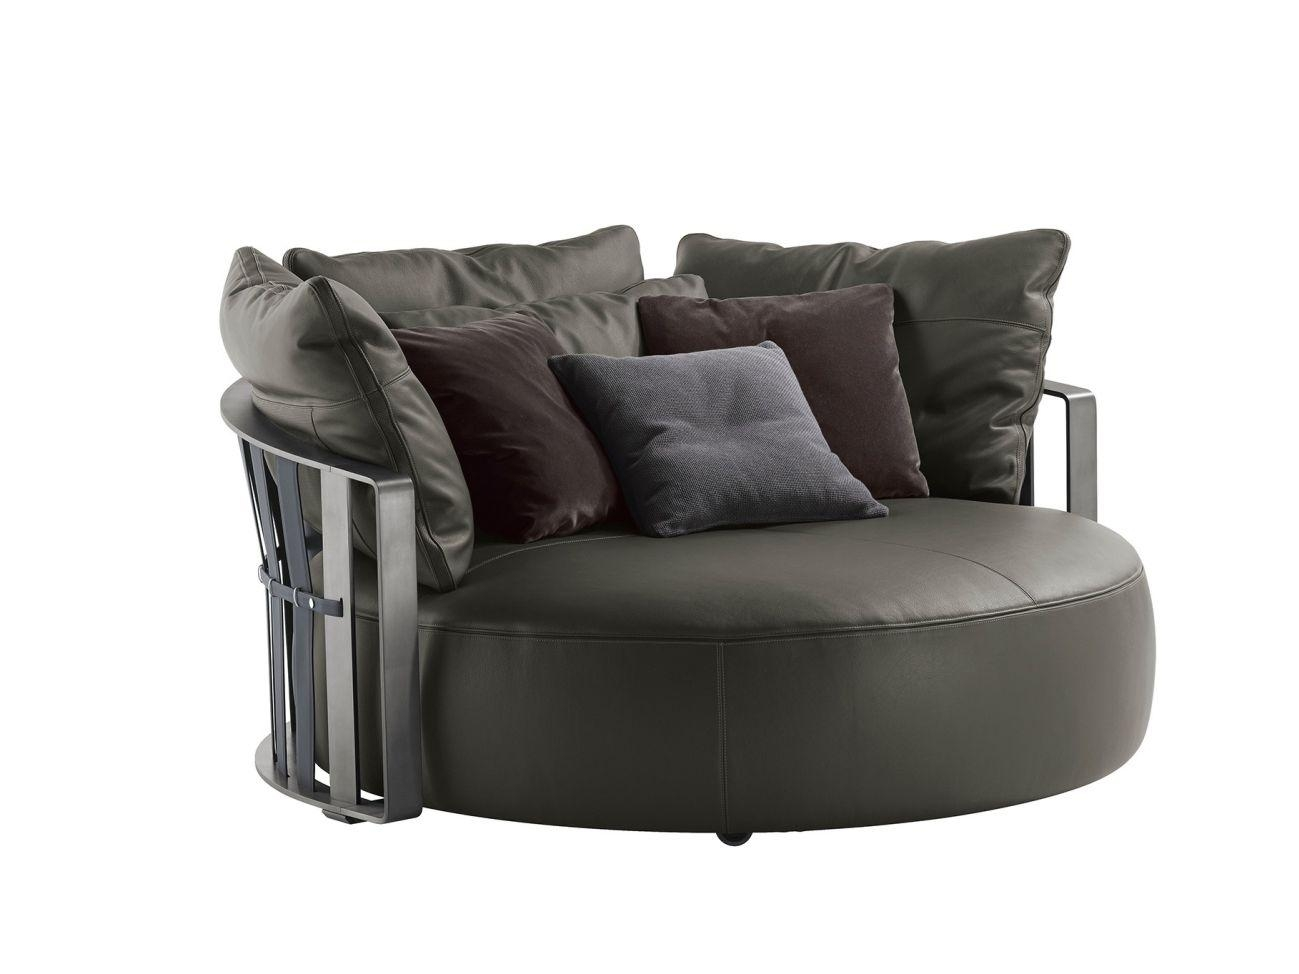 Sofas Center : Large Round Sofa Chair Cheaplarge Cheaptrendy Inside Round Sofa Chairs (View 3 of 20)